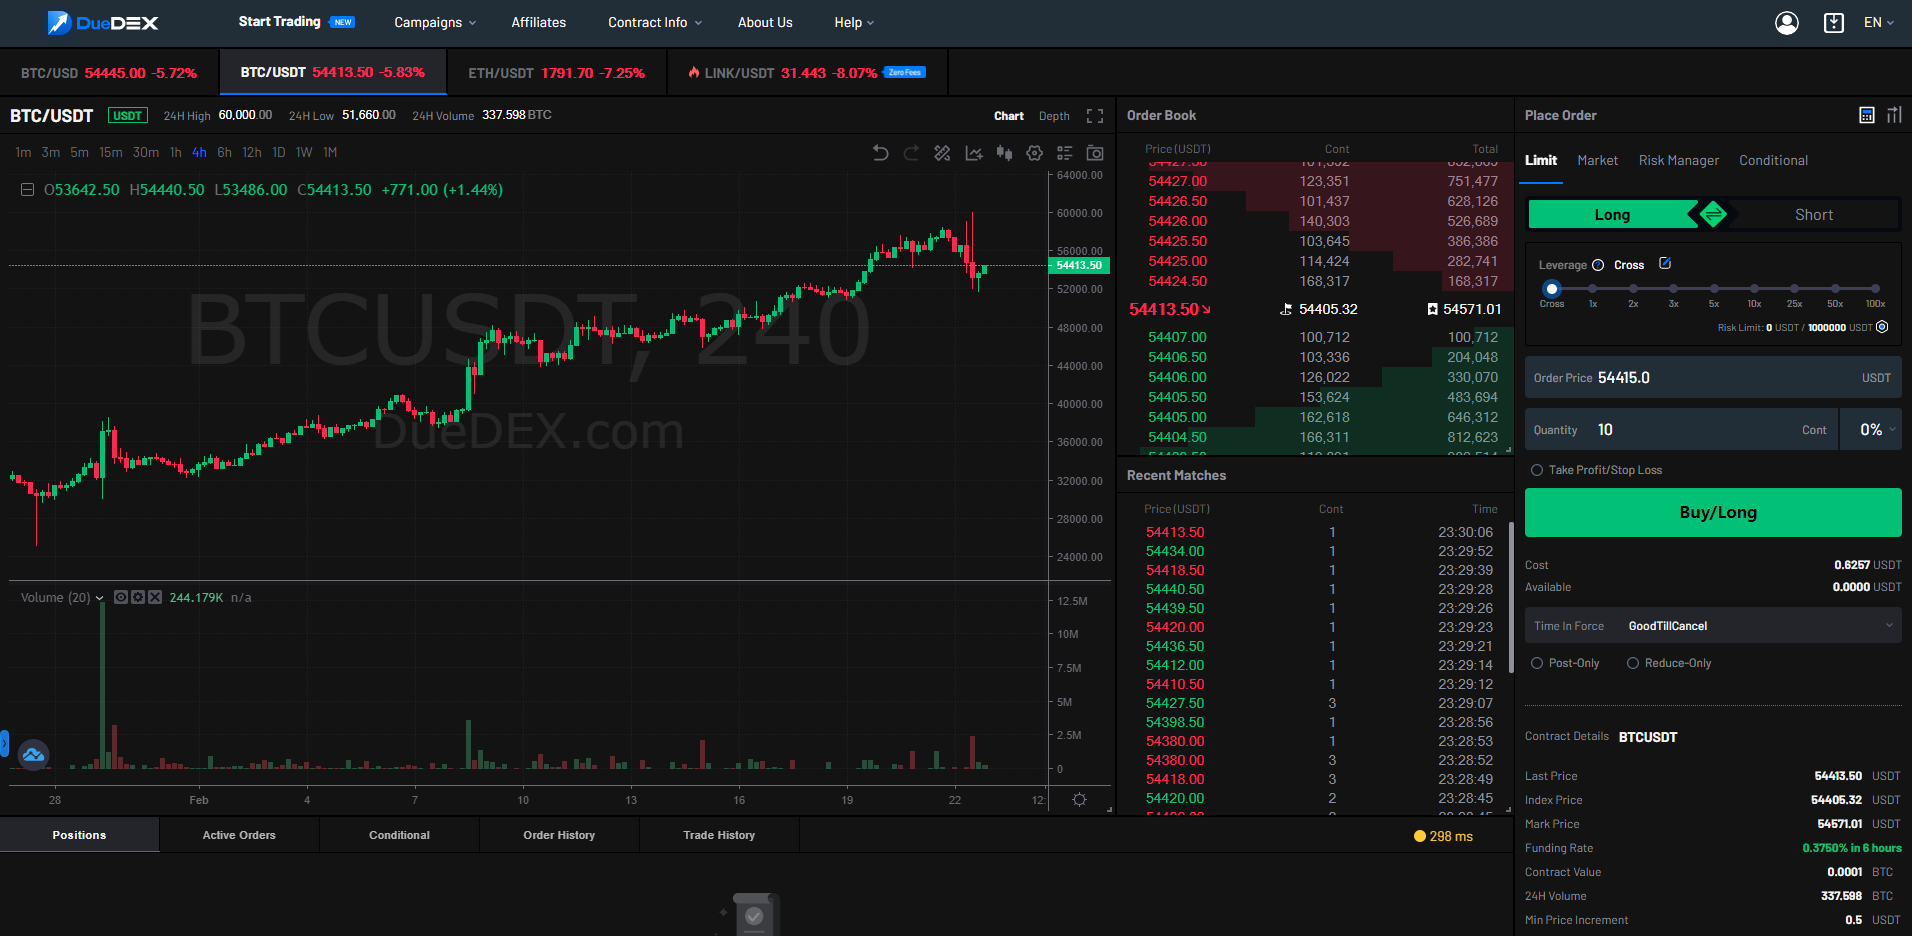 the user experience on duedex is suitable for new people to the crypto industry